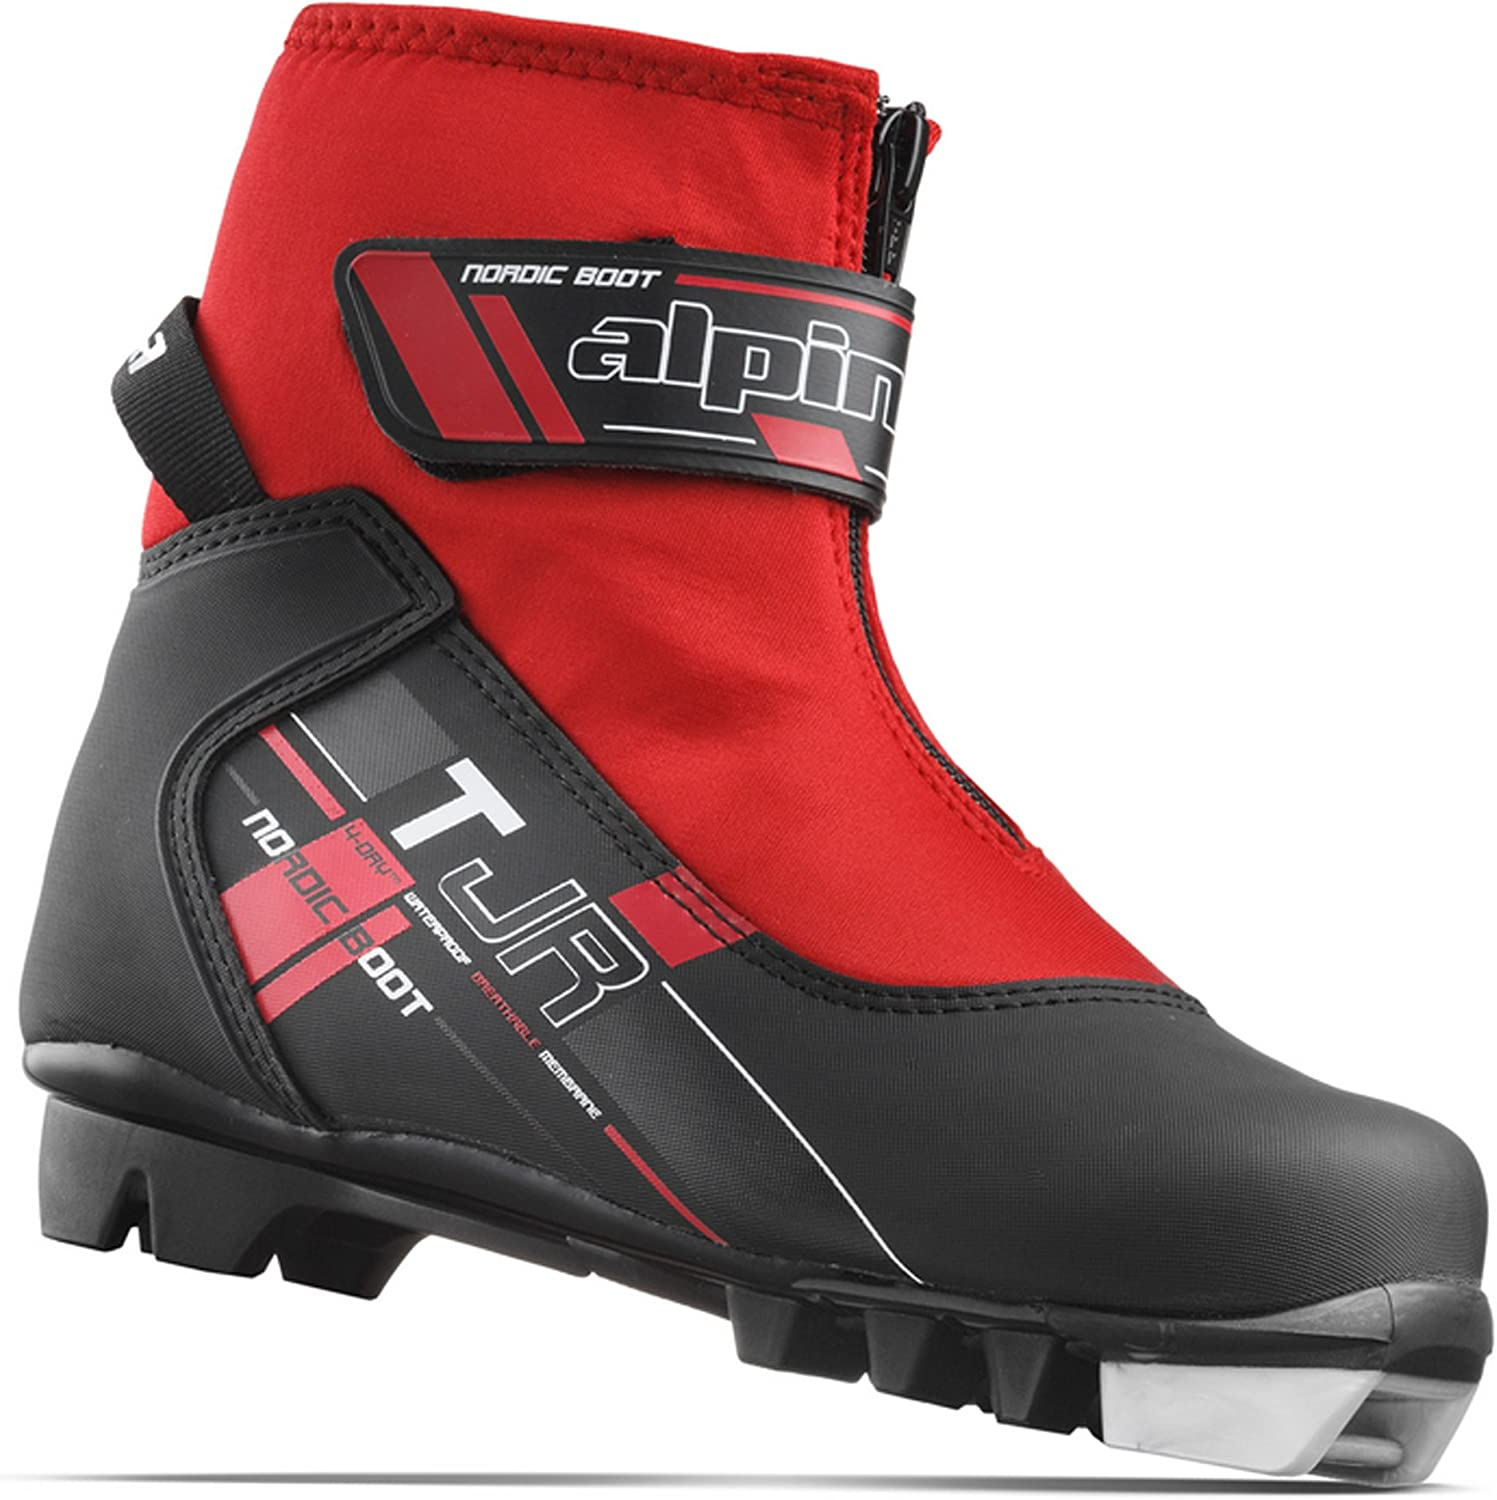 Alpina Sports Youth Max 47% OFF TJ Touring Ski ! Super beauty product restock quality top! Boots Strap with L Zippered